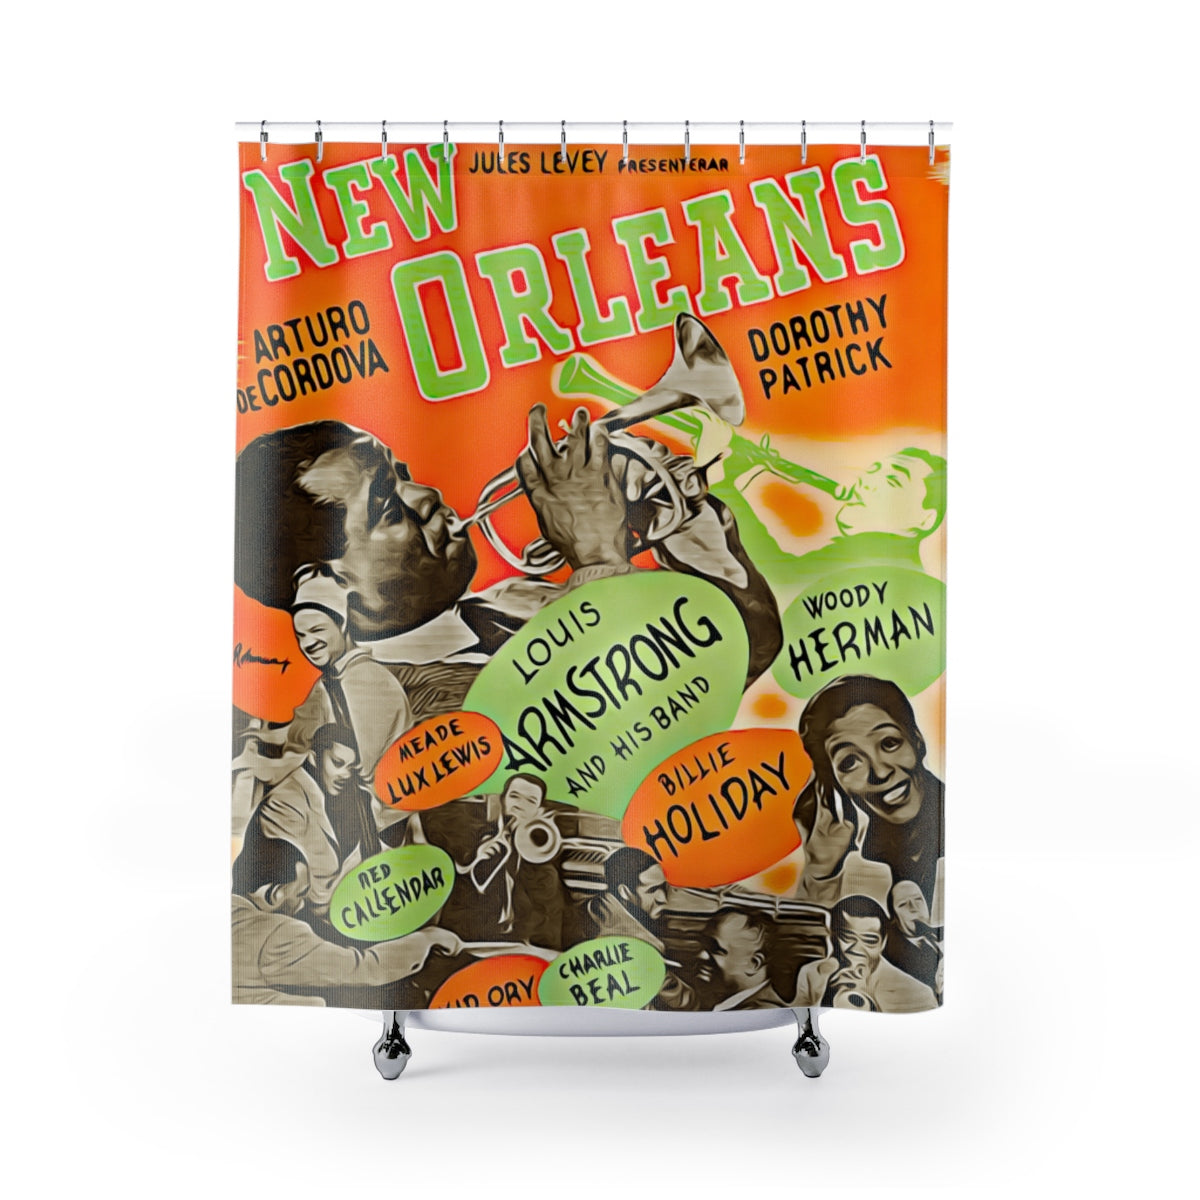 New Orleans Jazz Legends Vintage Poster Louis Armstrong Shower Curtains